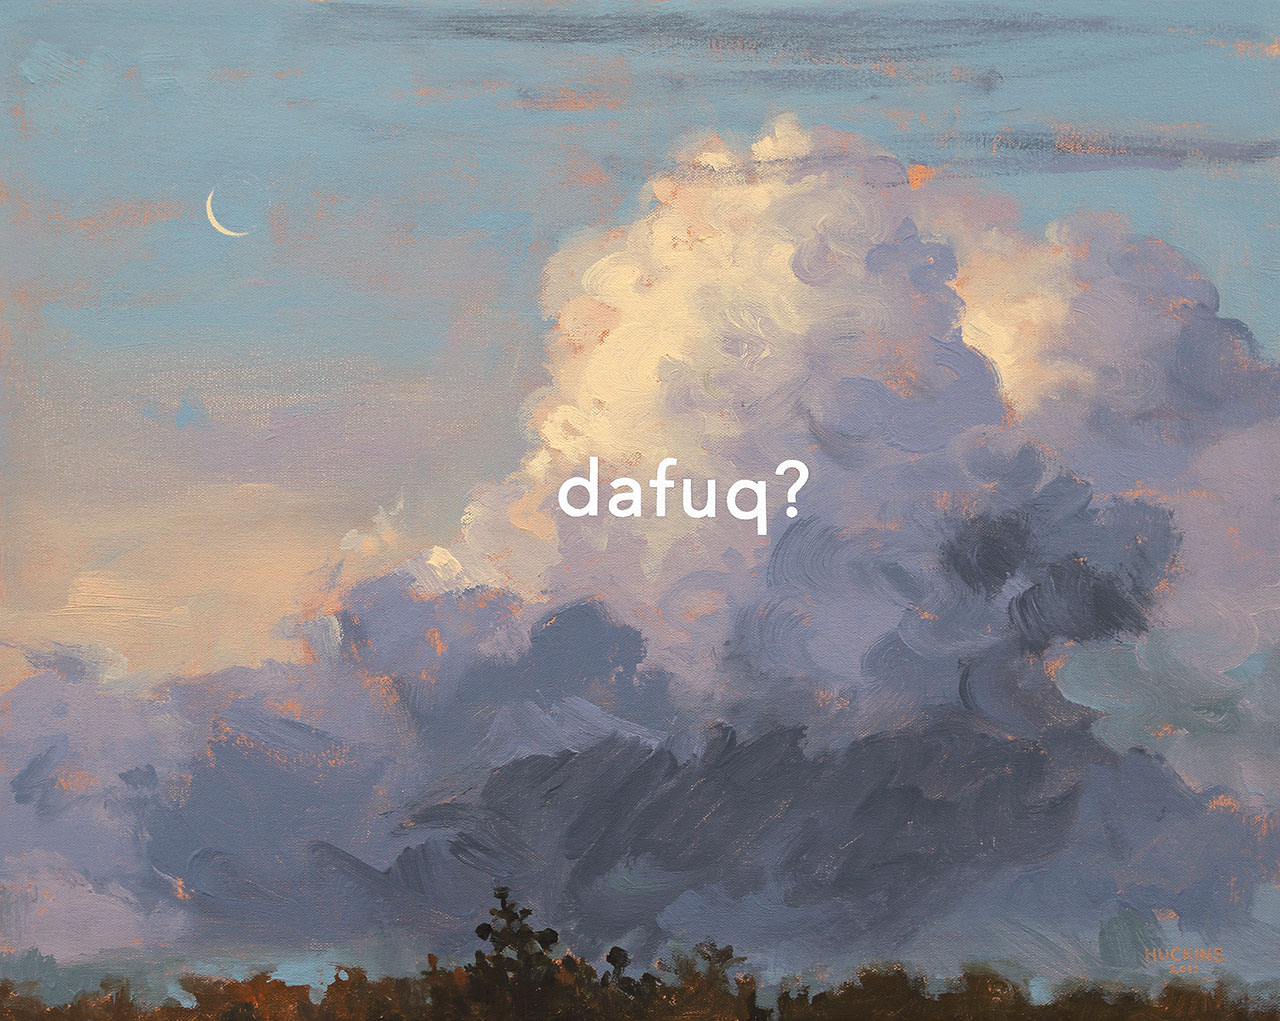 Shawn Huckins, Cole's Cloud Study: The Fuck?, 2017. Acrylic on canvas, 16 x 20 in (41 x 51 cm).